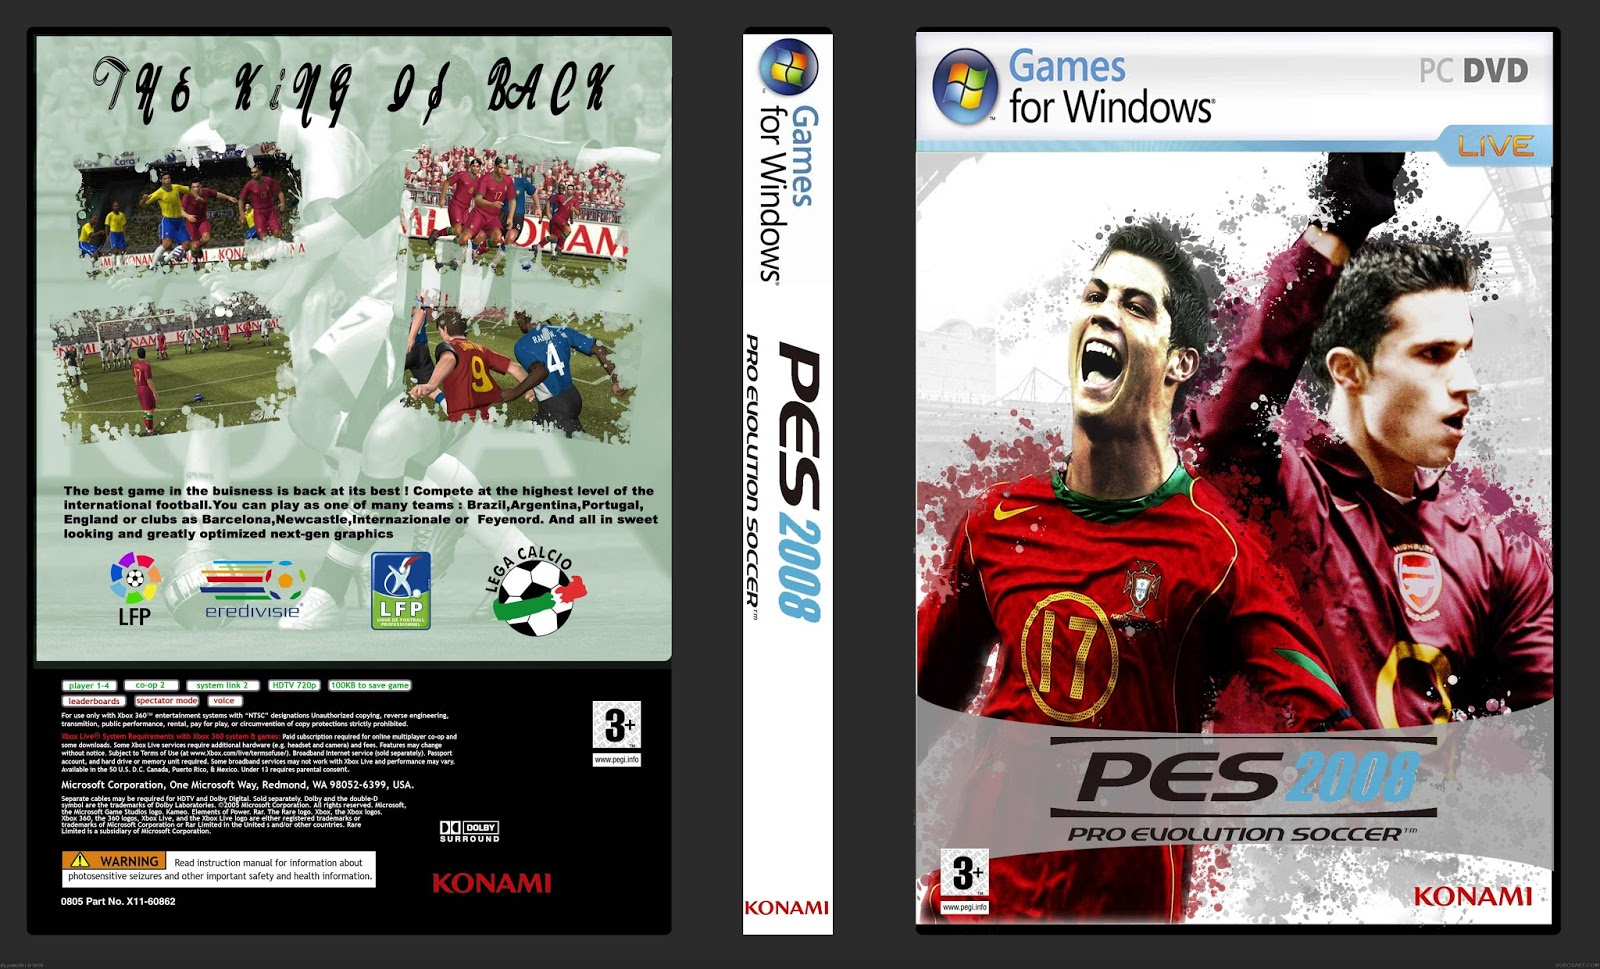 PES 2011 System Requirements